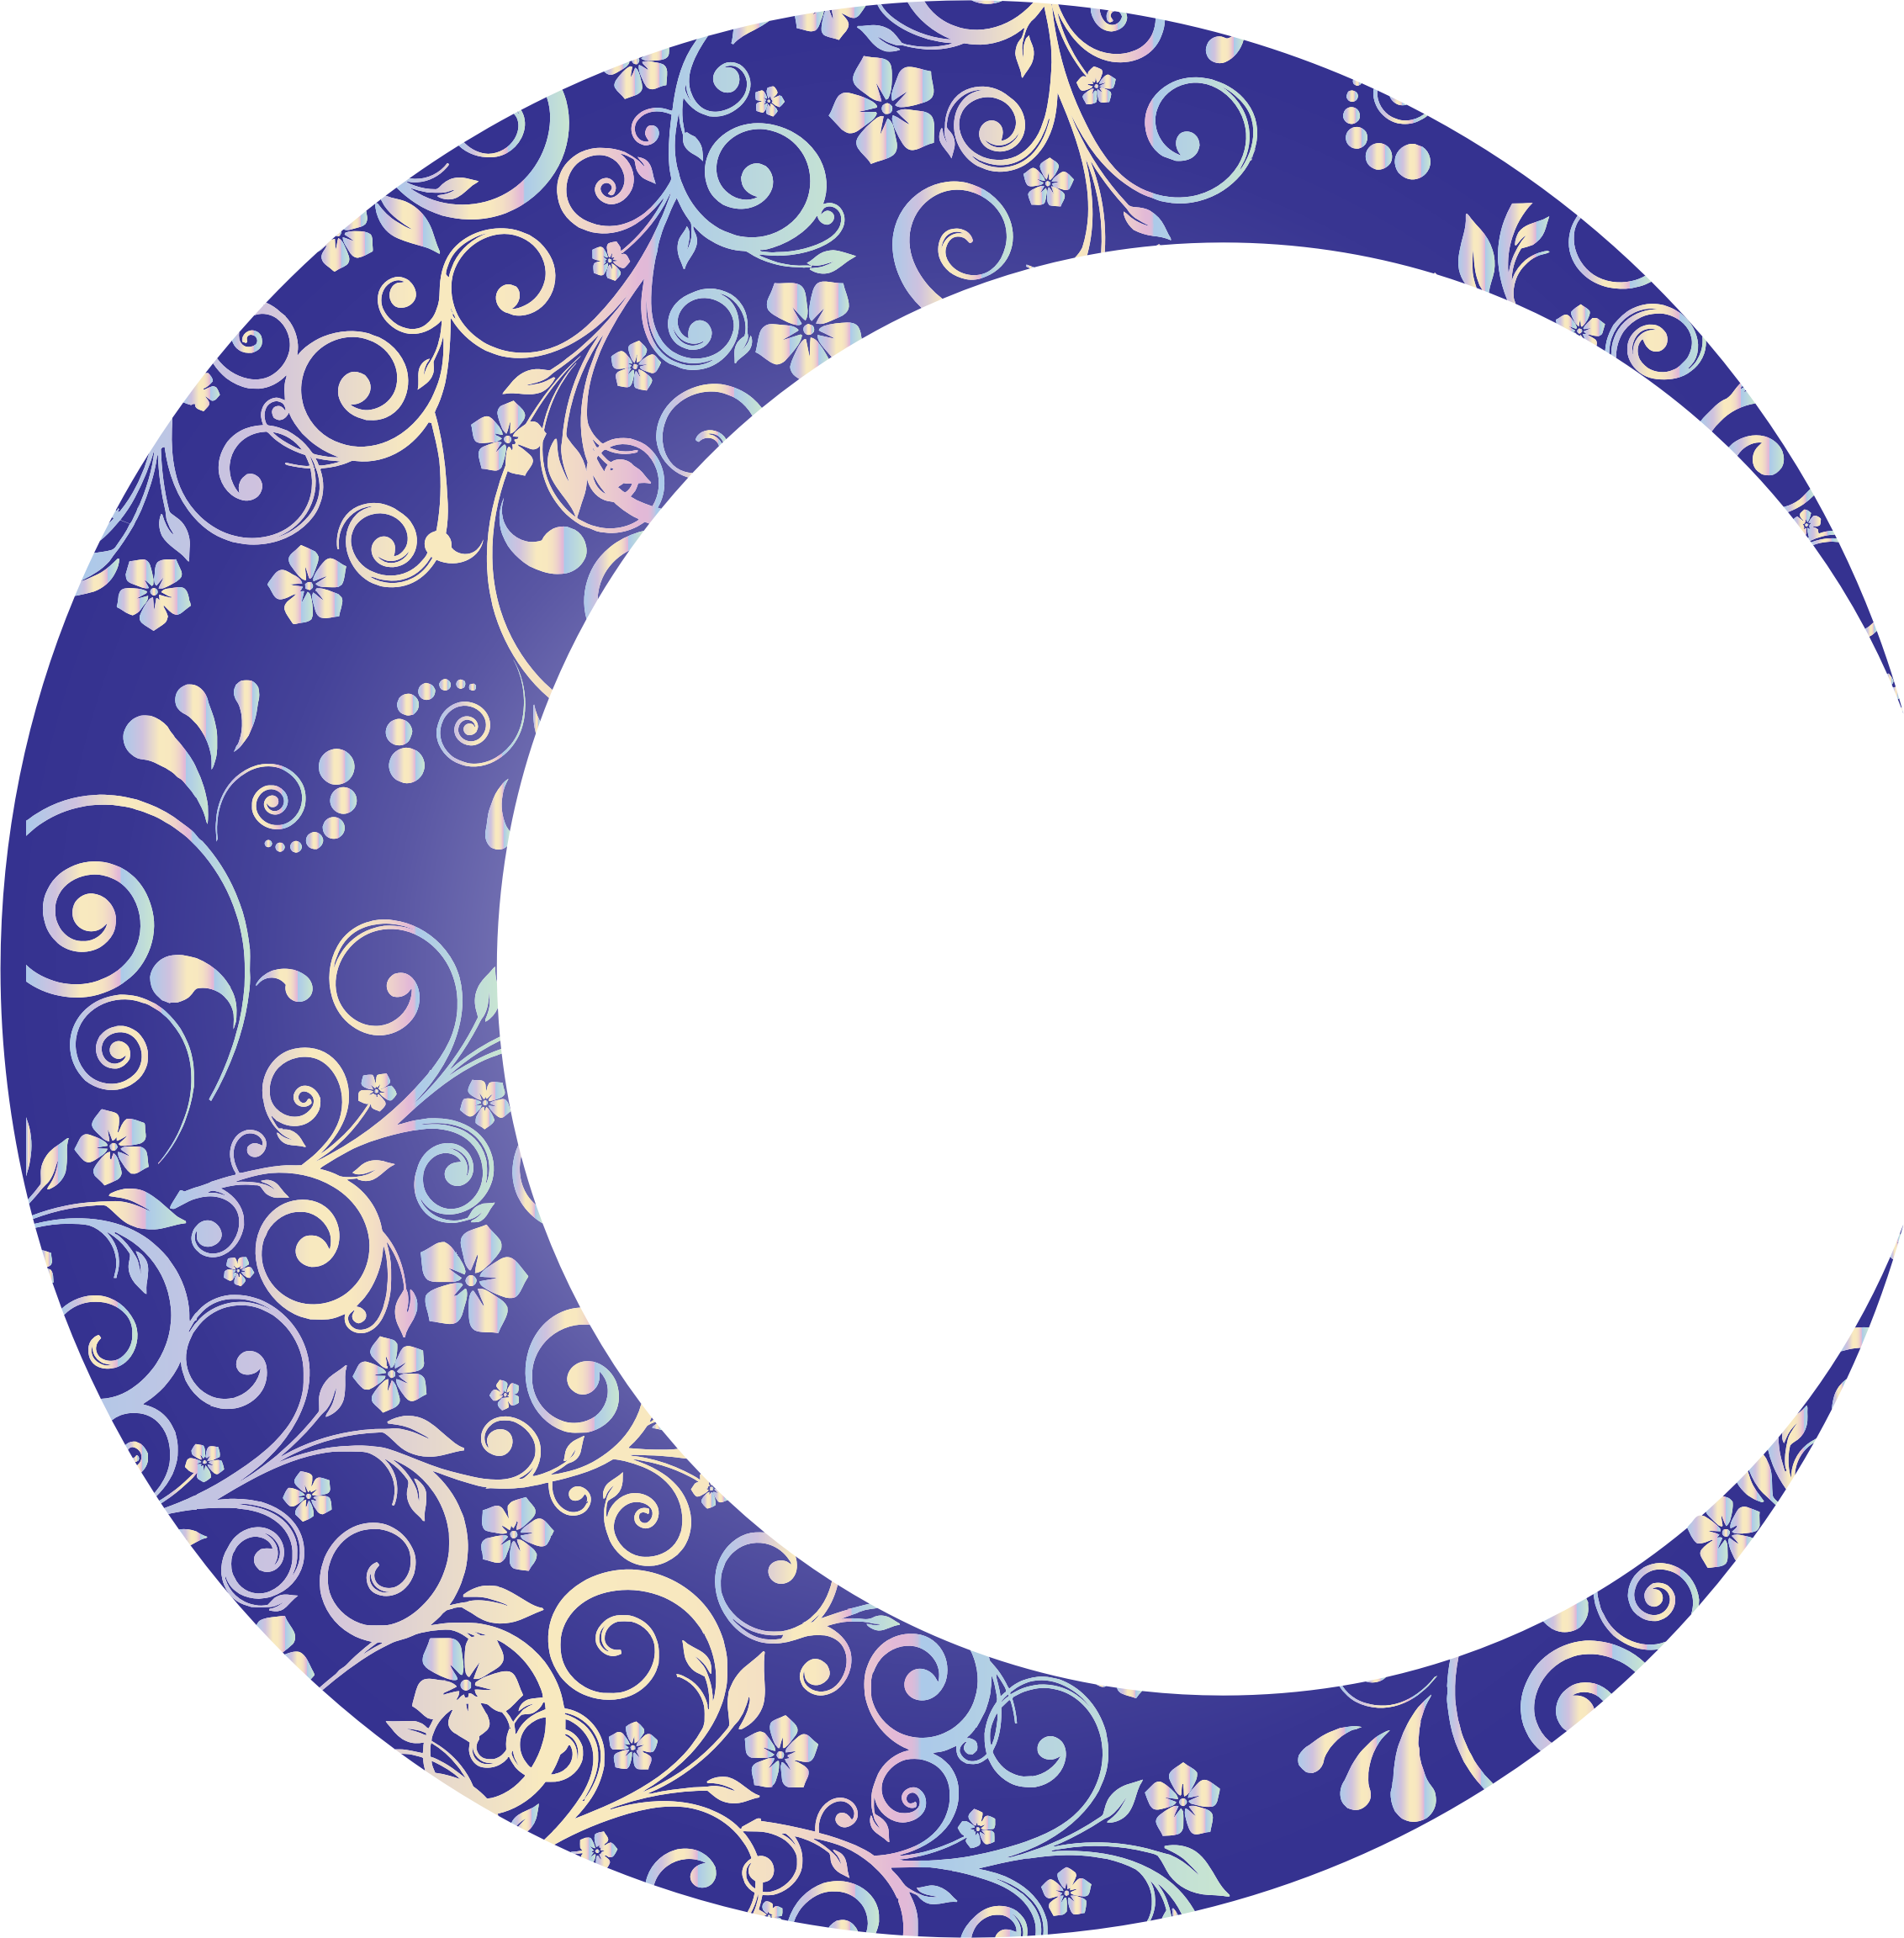 Prismatic Floral Crescent Moon Mark II by GDJ